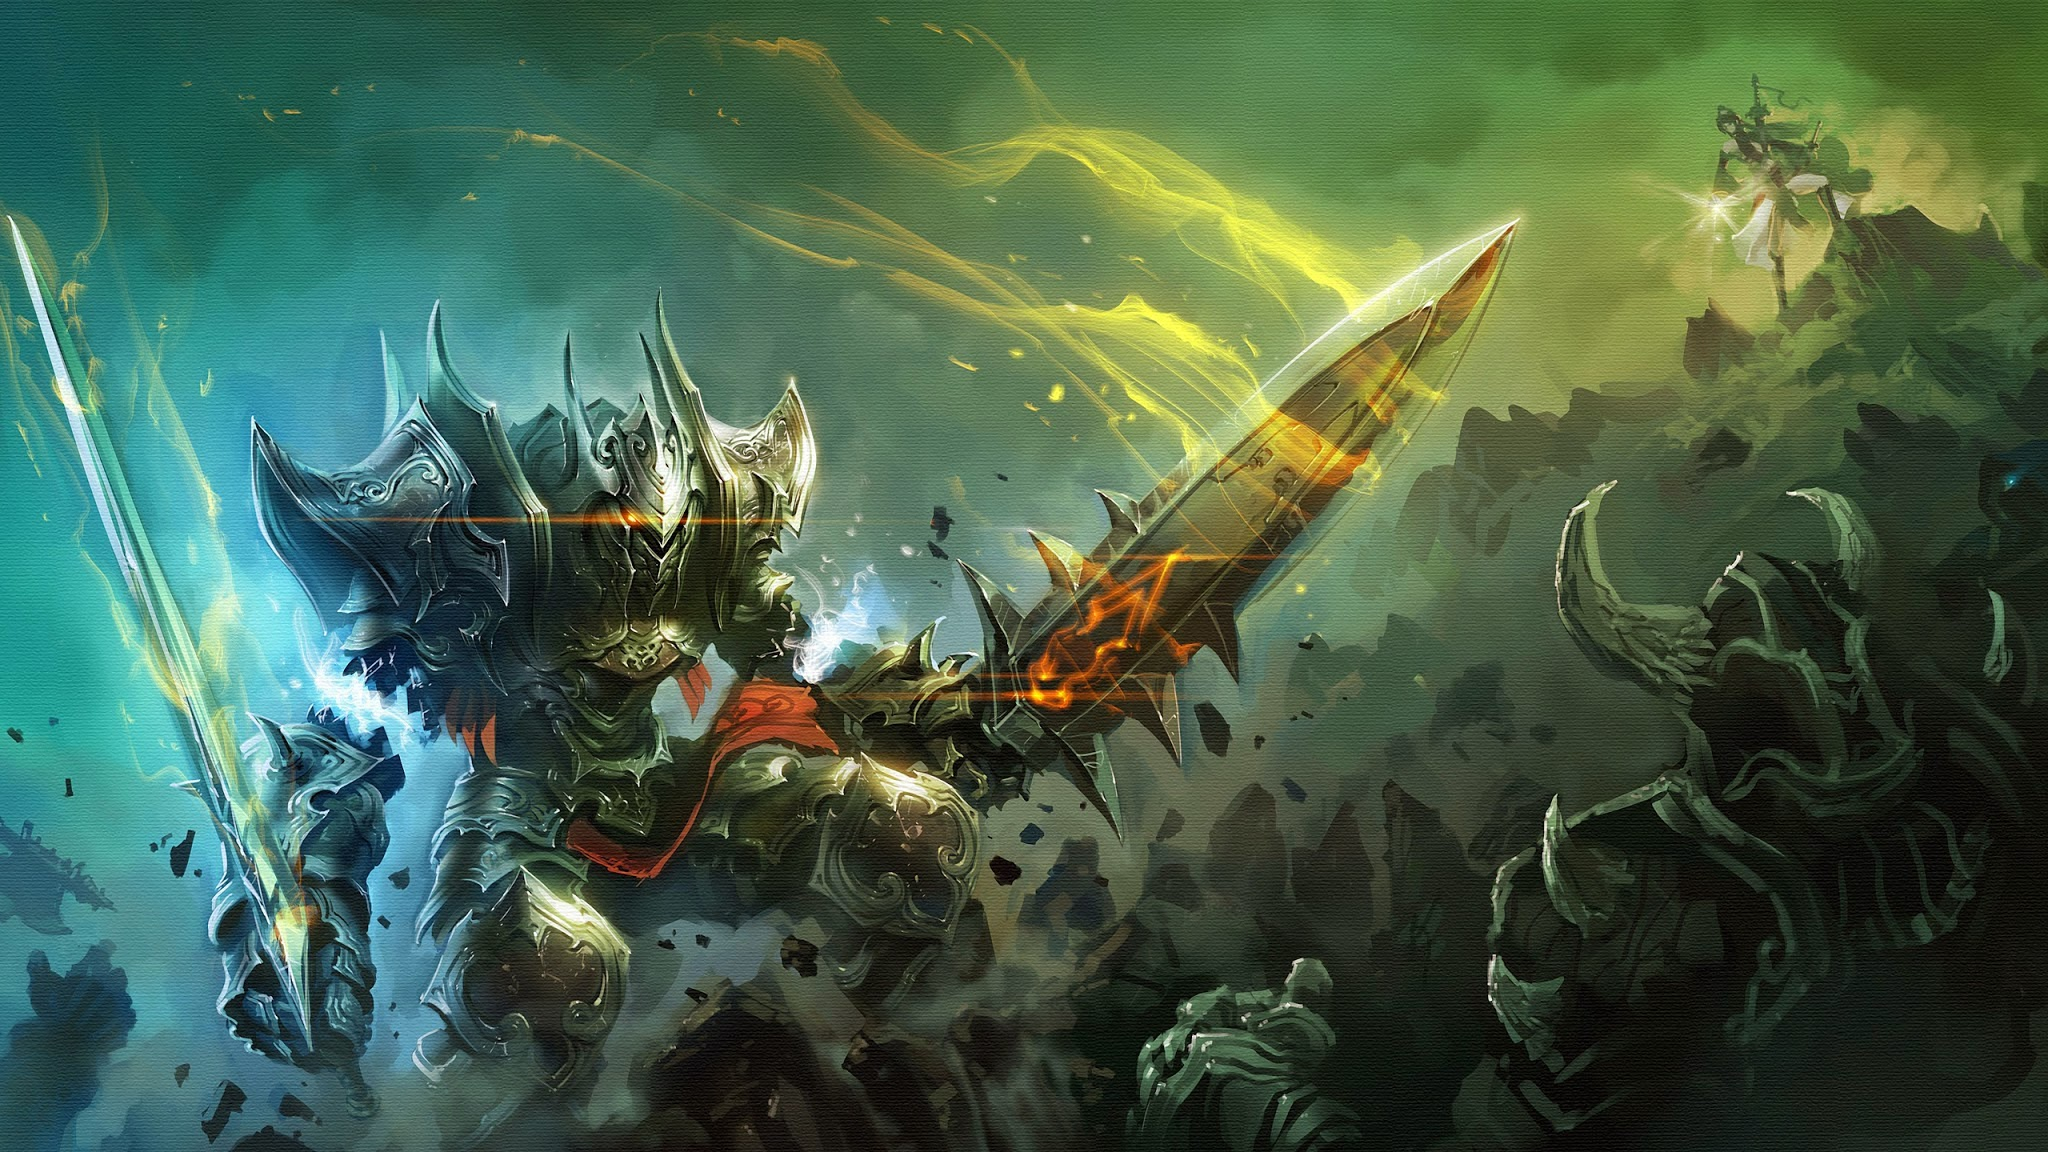 Epic Wallpapers Hd: Epic Anime Wallpaper